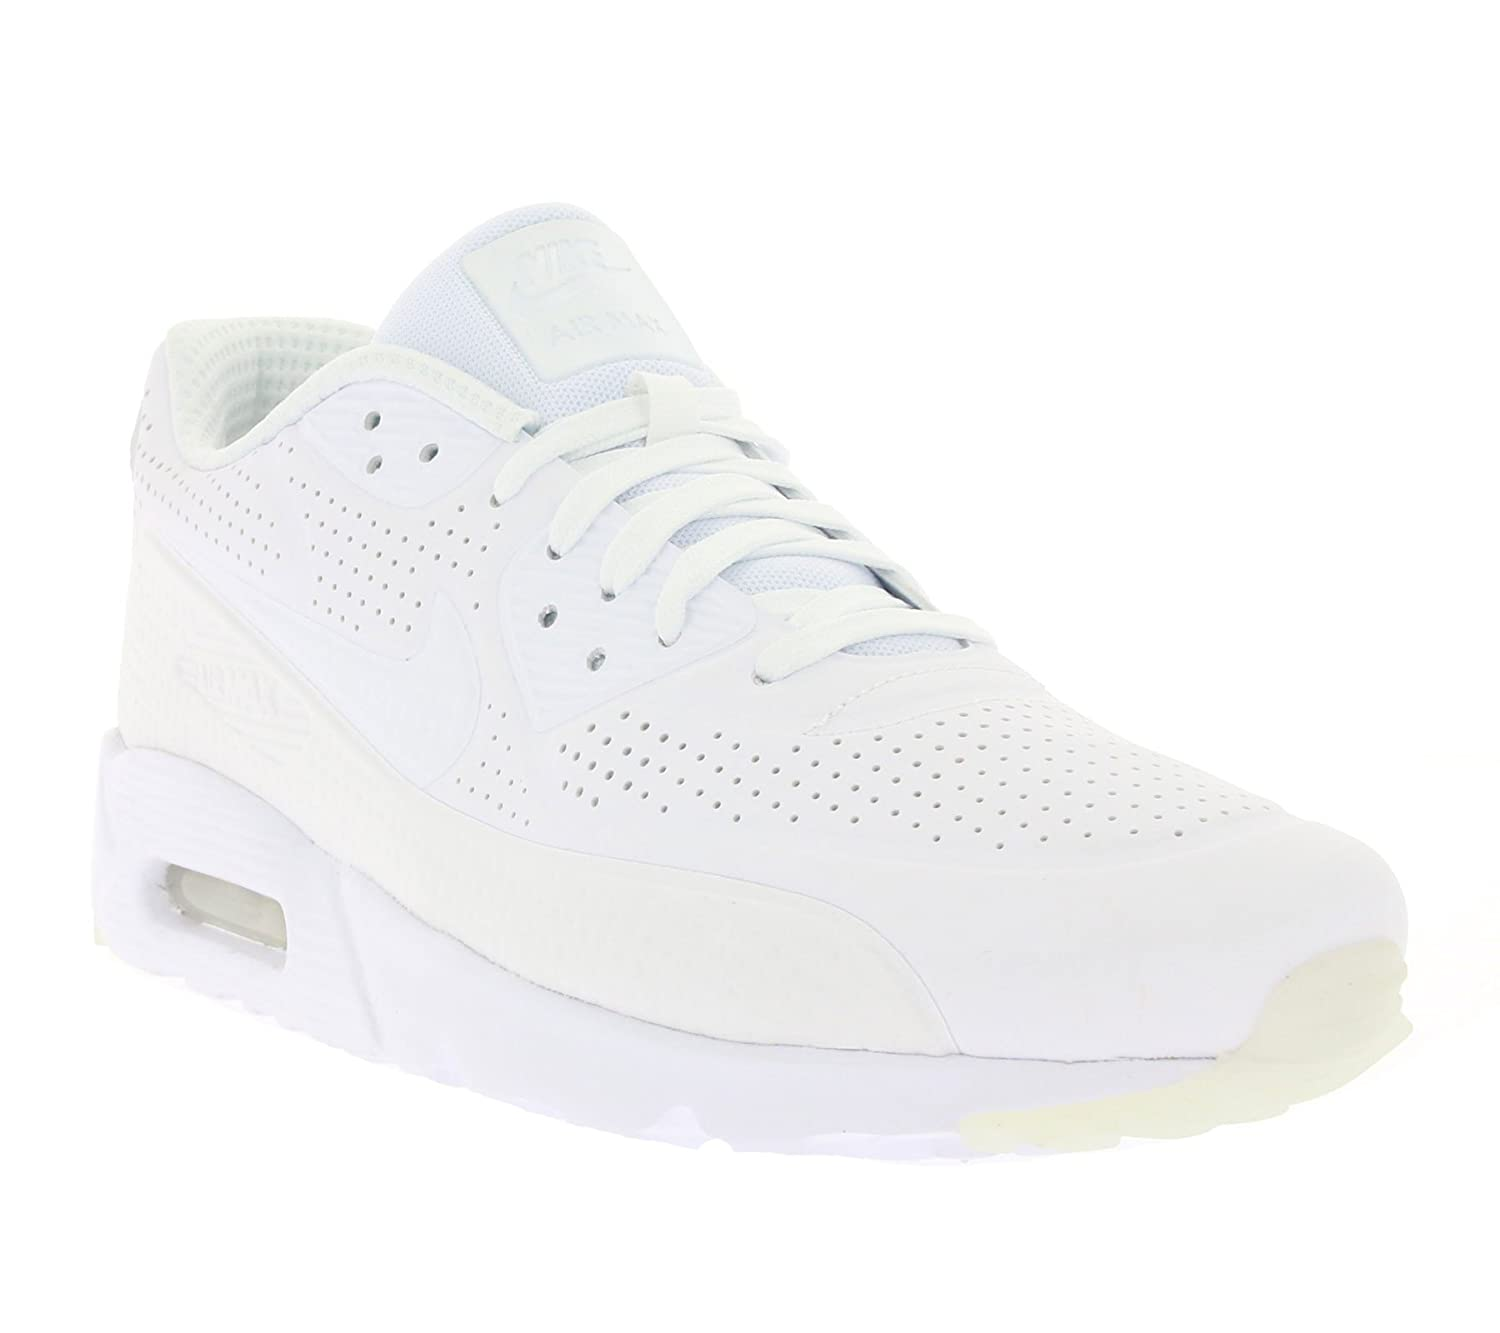 new concept 235da 94650 Nike Air Max 90 Ultra Moire, Men s Training